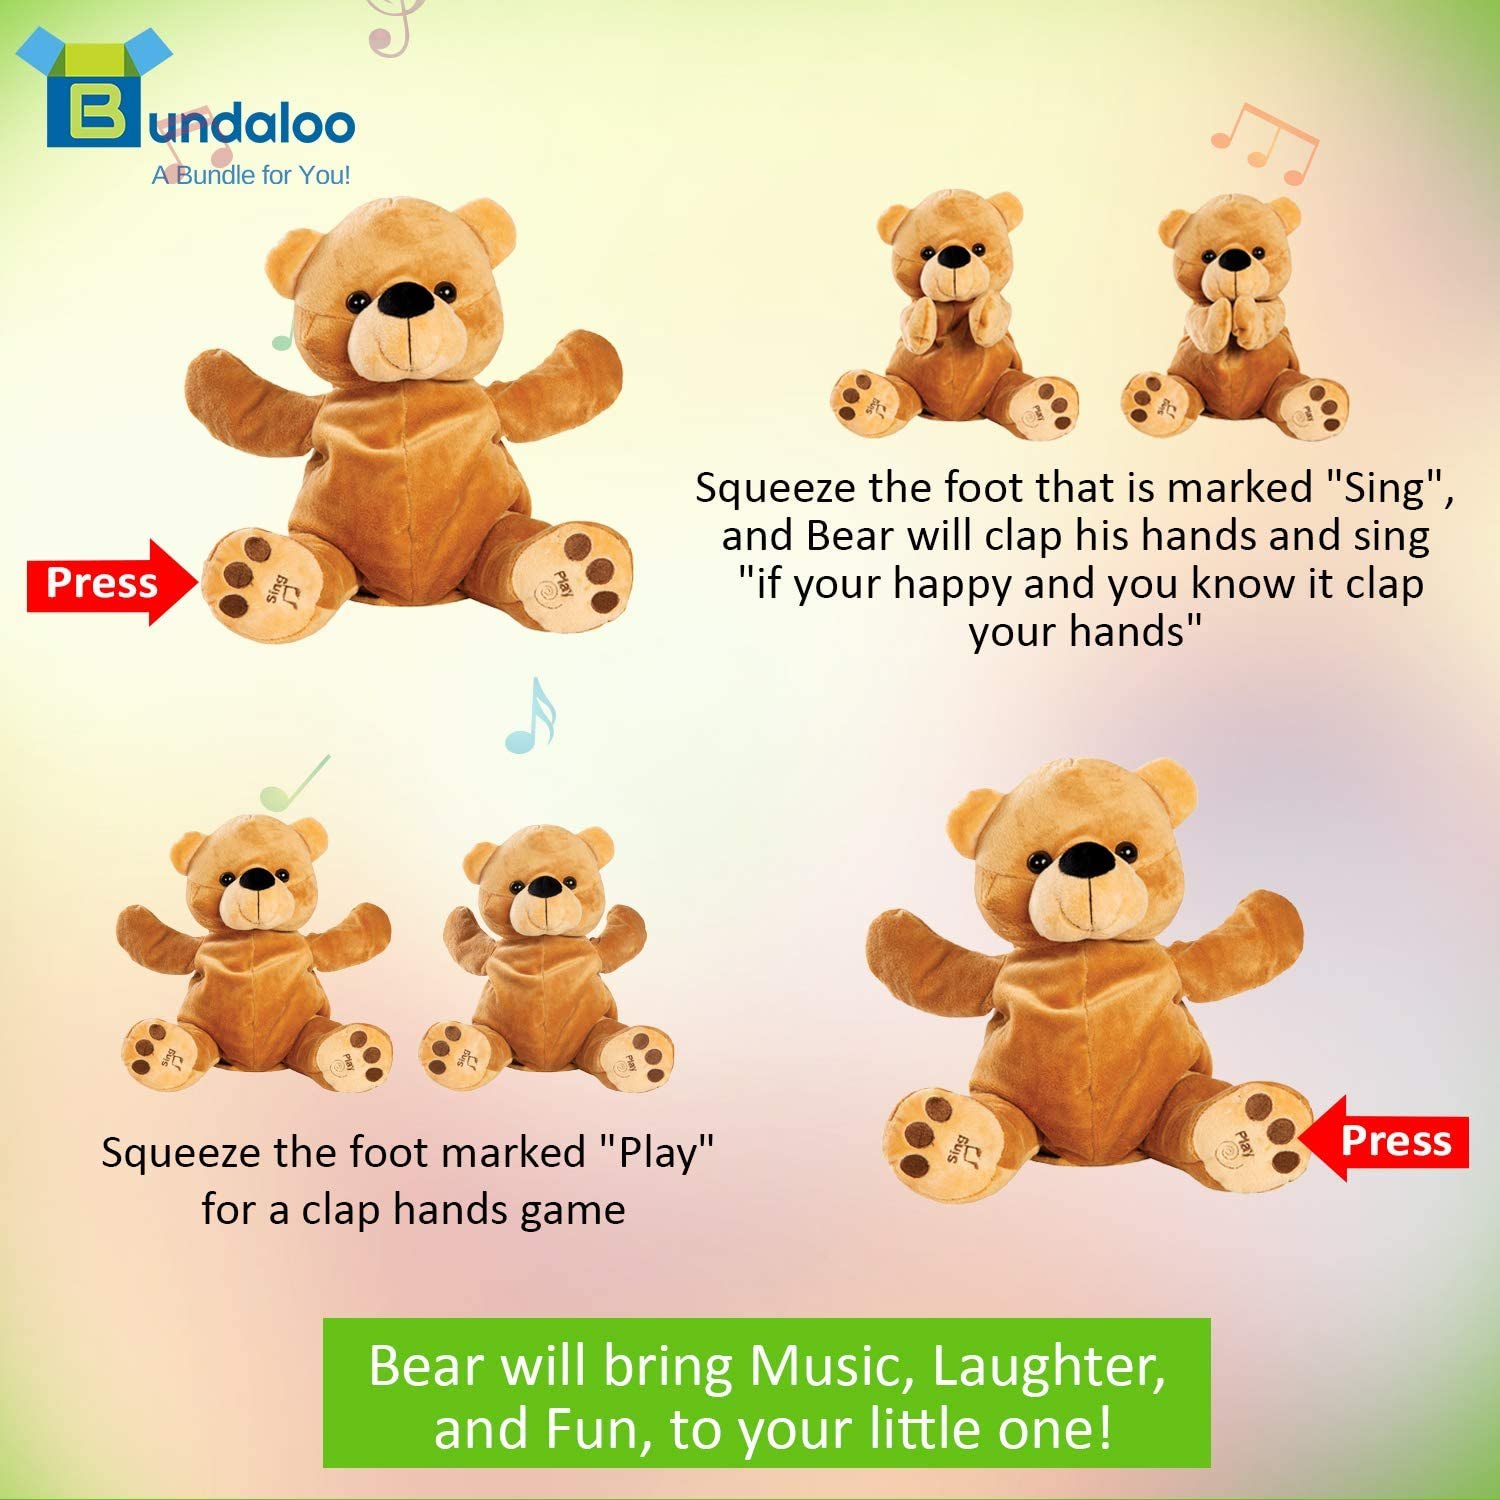 Animated Plush Gifts for Little Girls and Boys 11 x 6-Inch Talking Stuffed Animal for Kids Musical Toys for Babies and Toddlers Bundaloo Clapping and Singing Bear Play Games and Sing Songs